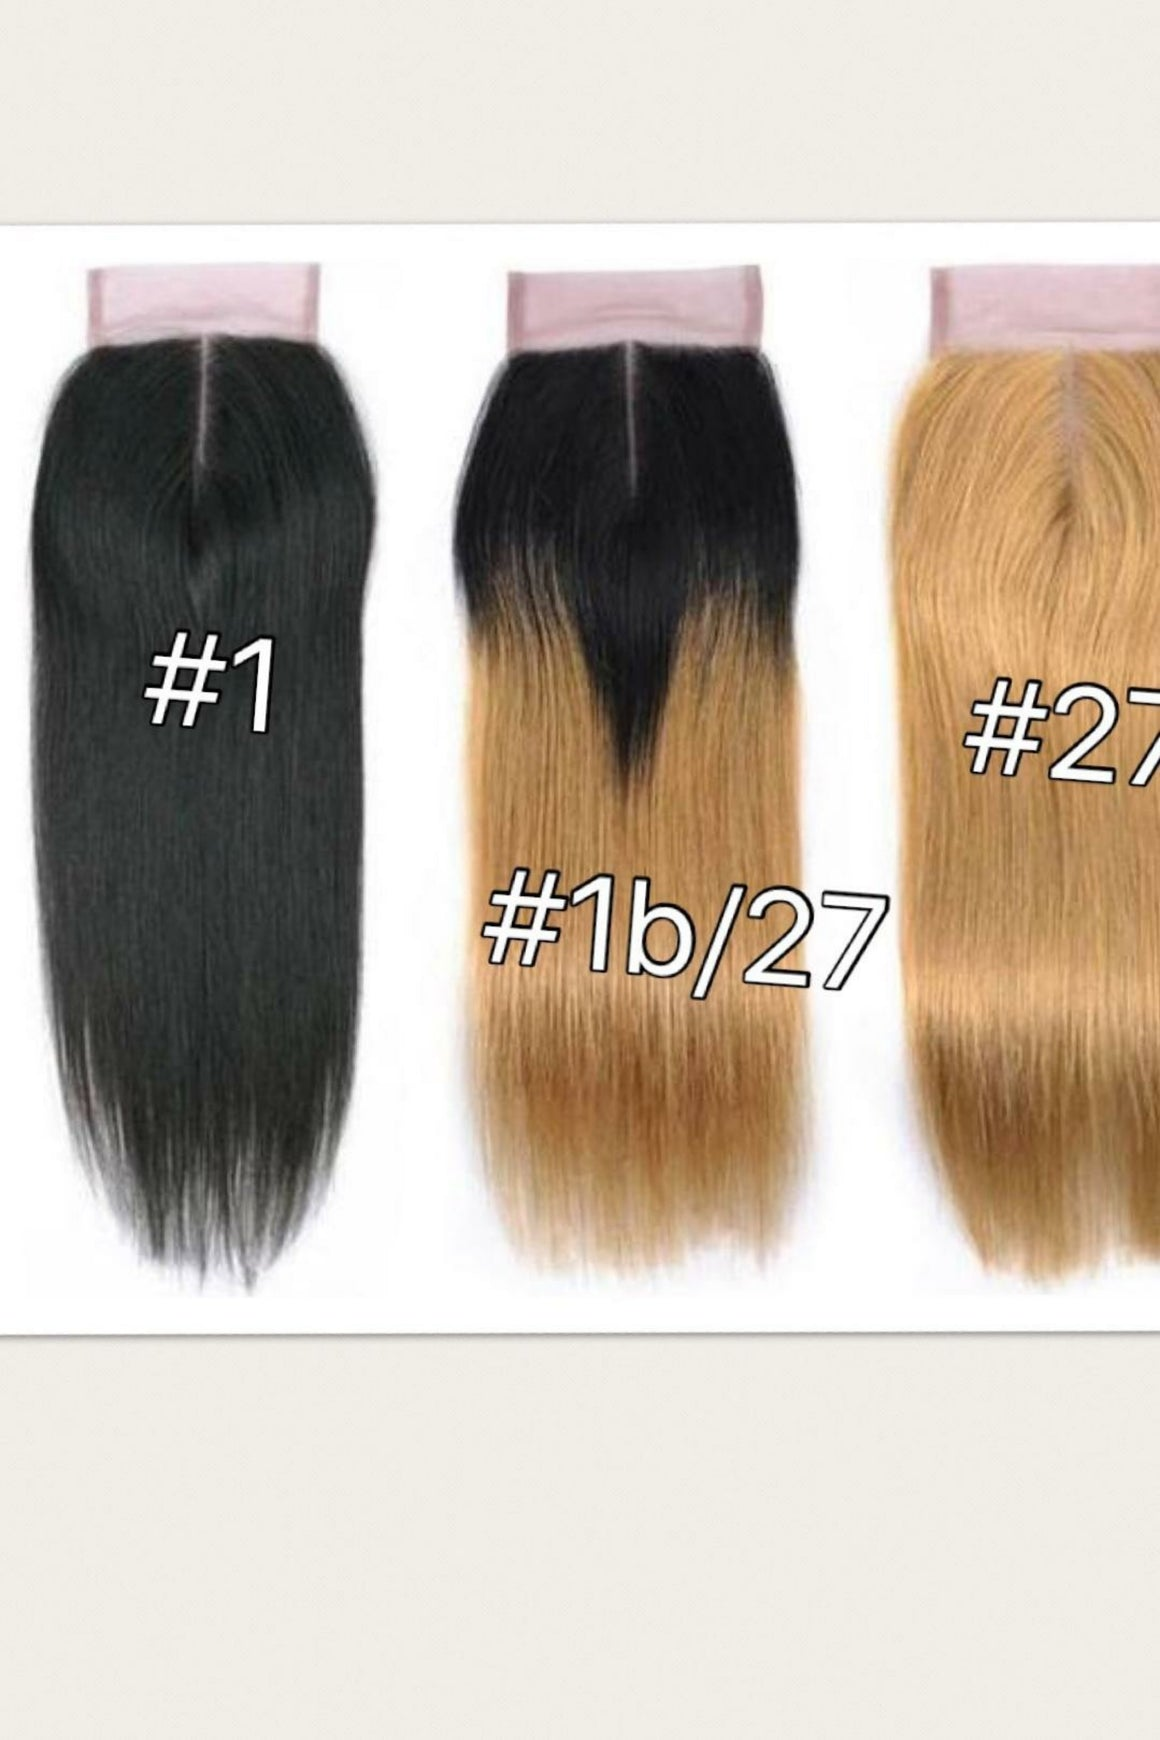 4 By 4 Straight Lace middle part closures in colors 1, 1b/27, 1b/30, and 27, Brazilian, Peruvian,and Malaysian hair pre-plucked with baby hairs. - mslhair